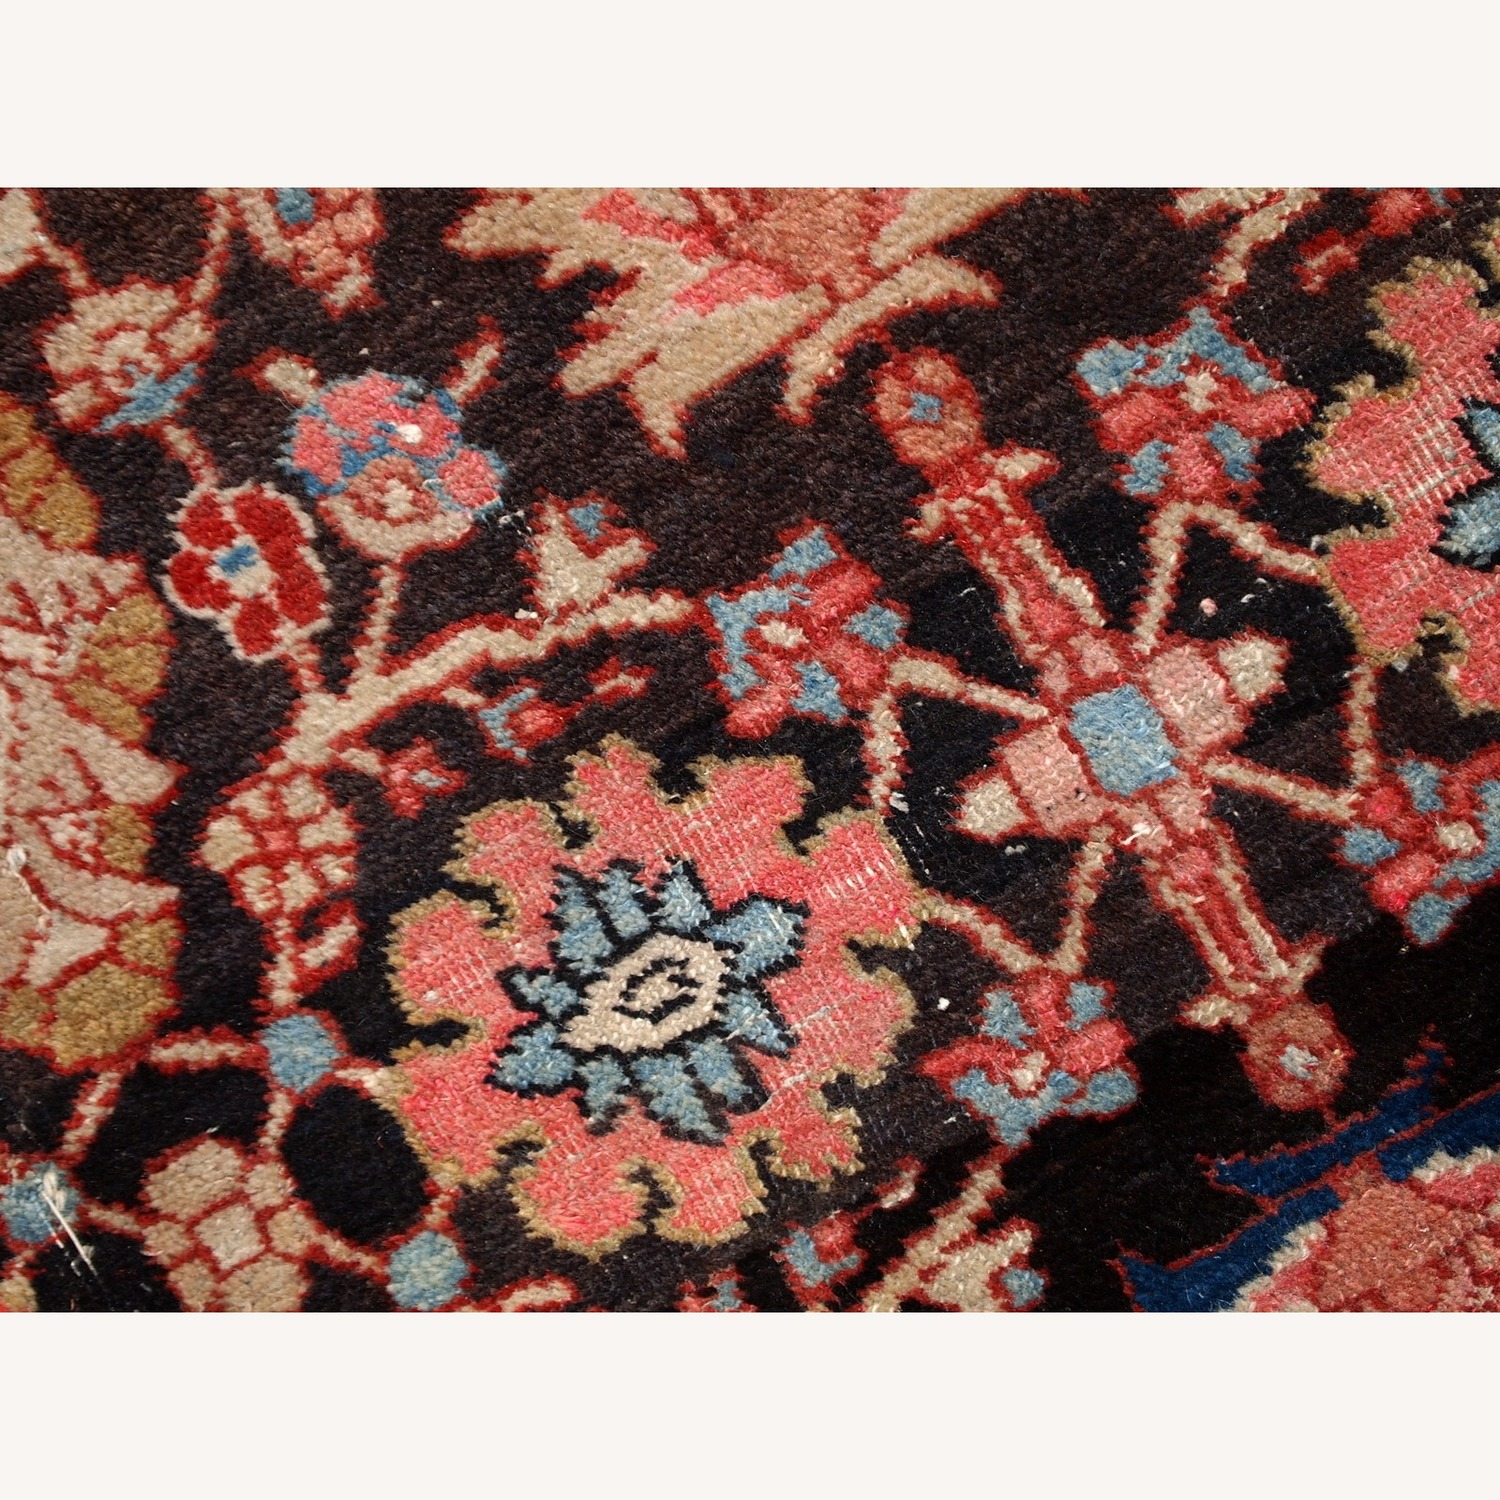 Handmade Antique Persian Bidjar Rug - image-5